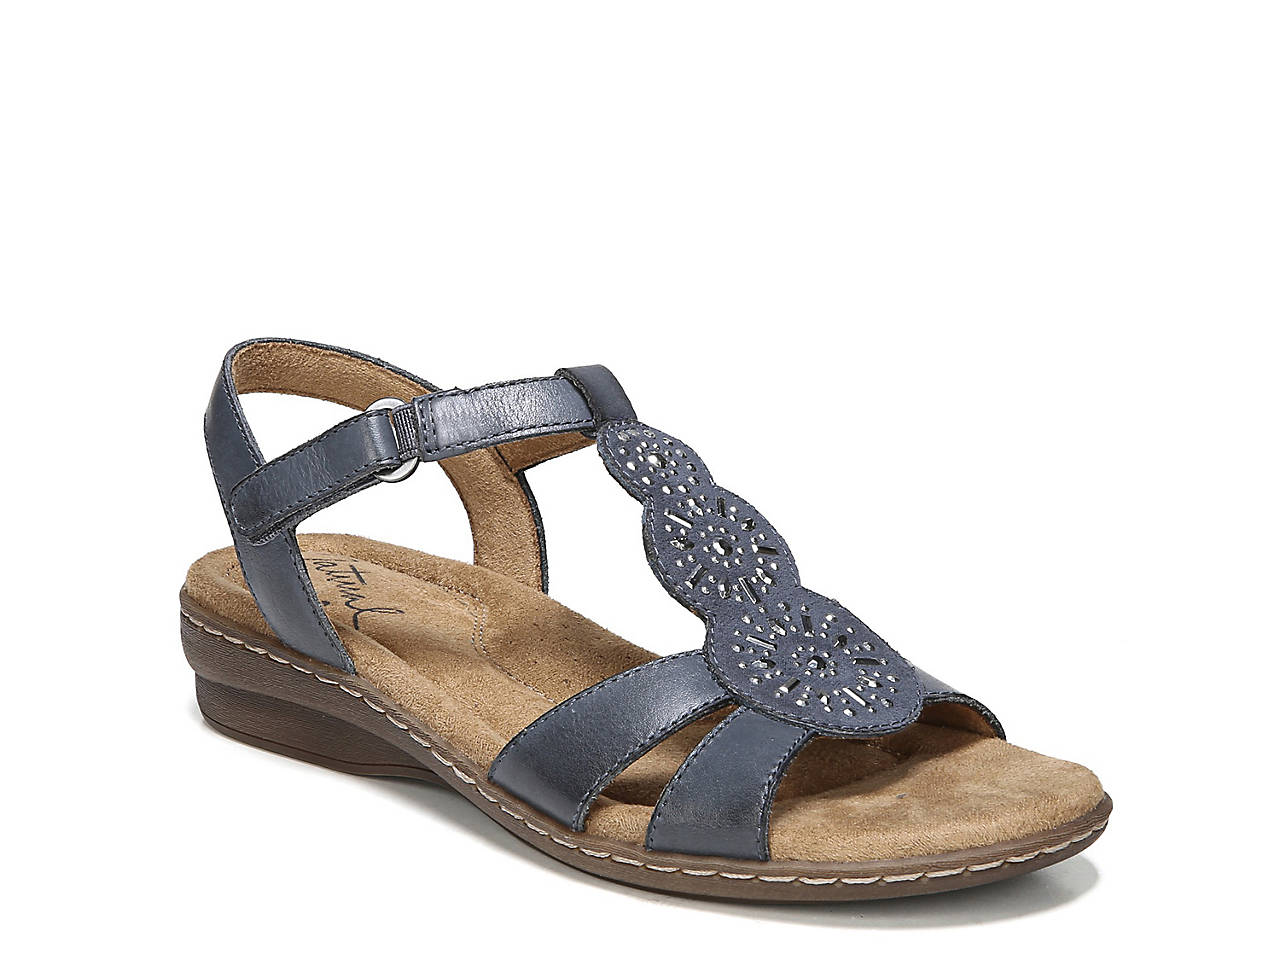 0925081273eb SOUL Naturalizer Belle Wedge Sandal Women s Shoes